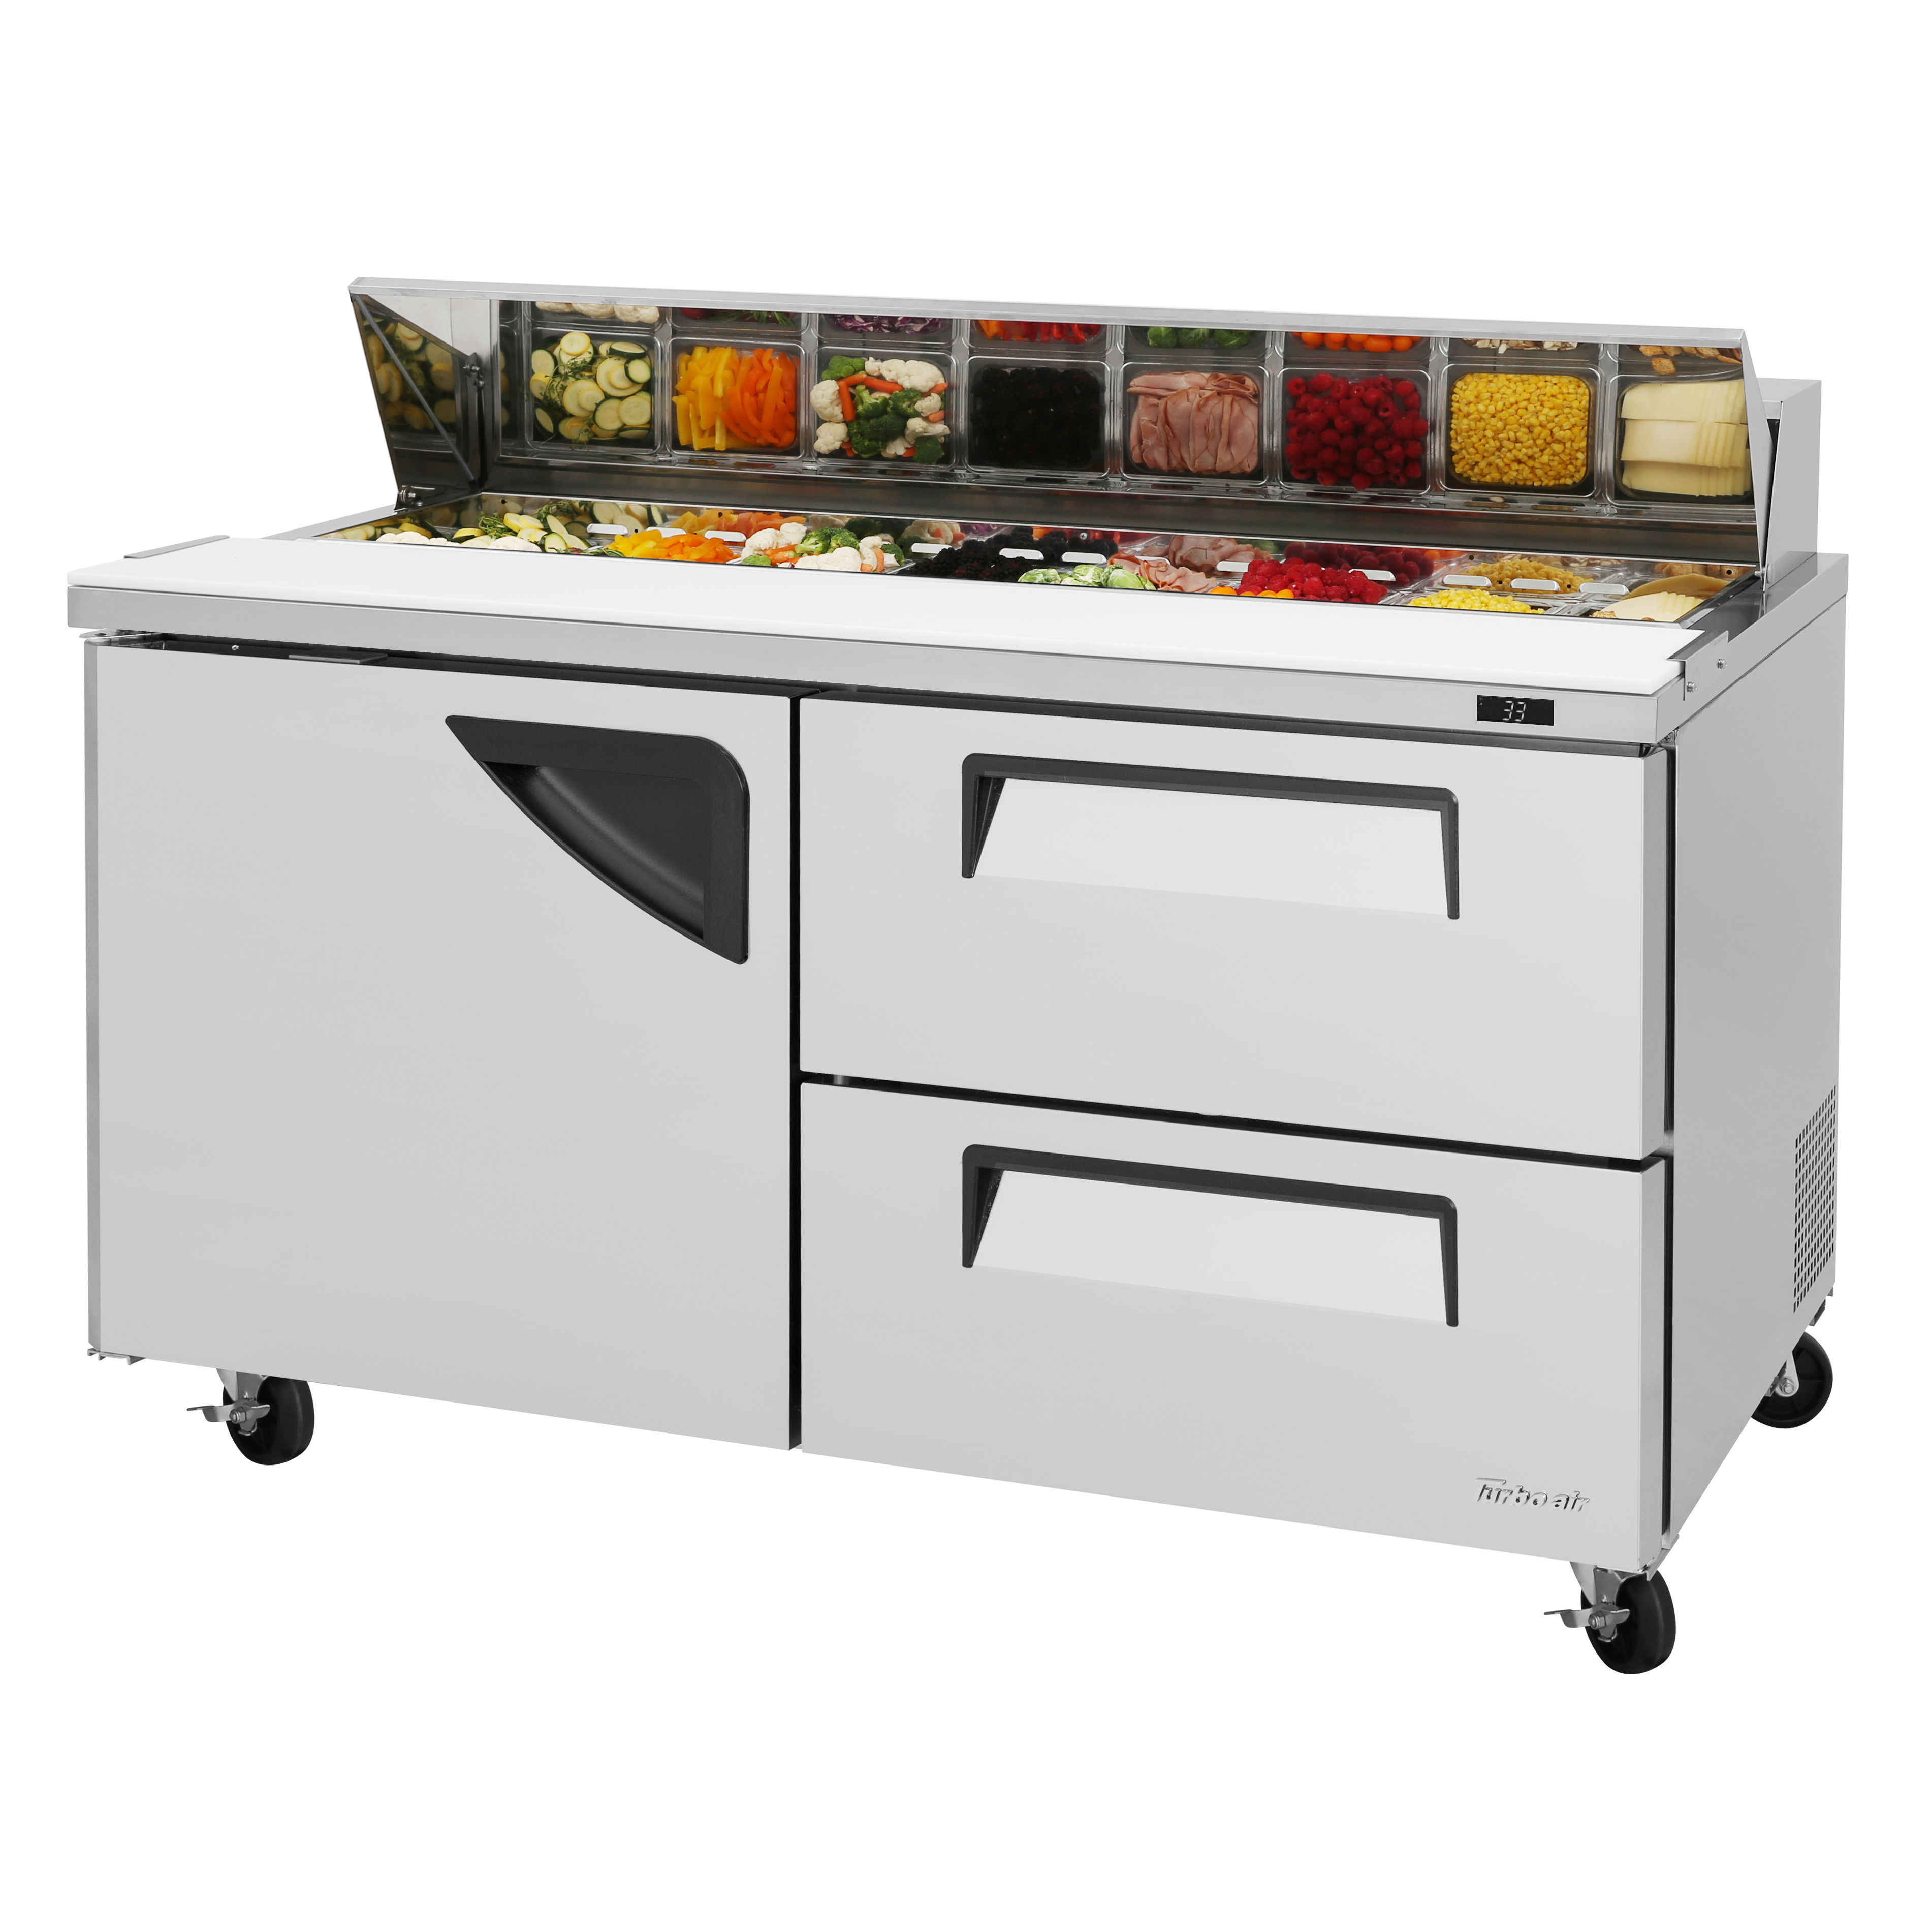 Turbo Air TST-60SD-D2-N refrigerated counter, sandwich / salad unit